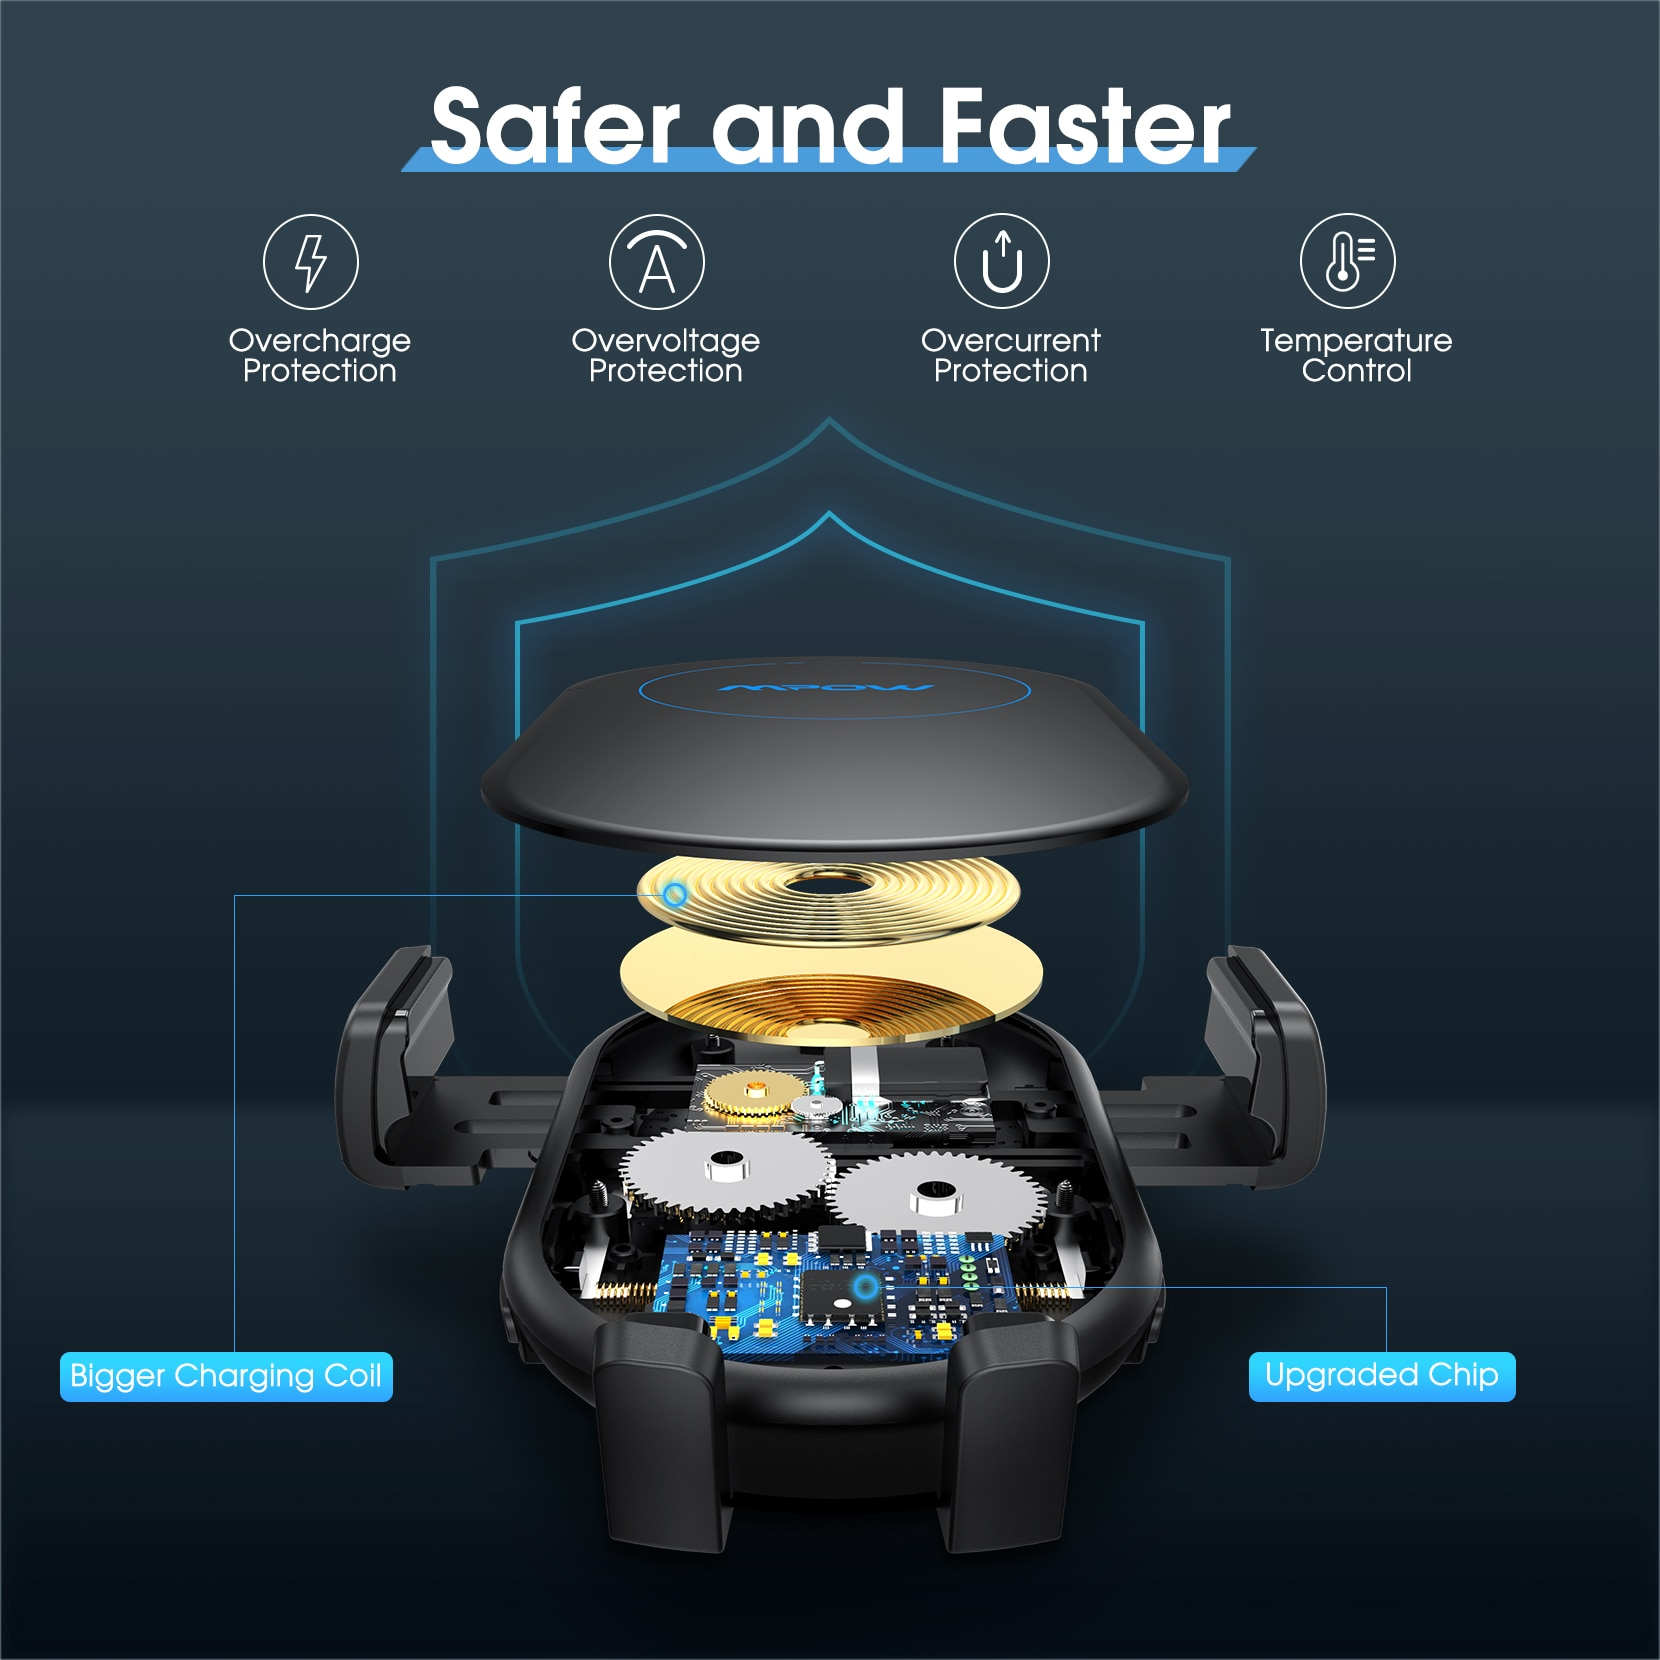 H544fe239864f4954ac37352c5afa8ca7r - Mpow Wireless Car Charger Mount 10W Auto-clamping Qi Fast Charging Car Mount with Power Storage Car Phone Holder for iPhone 12